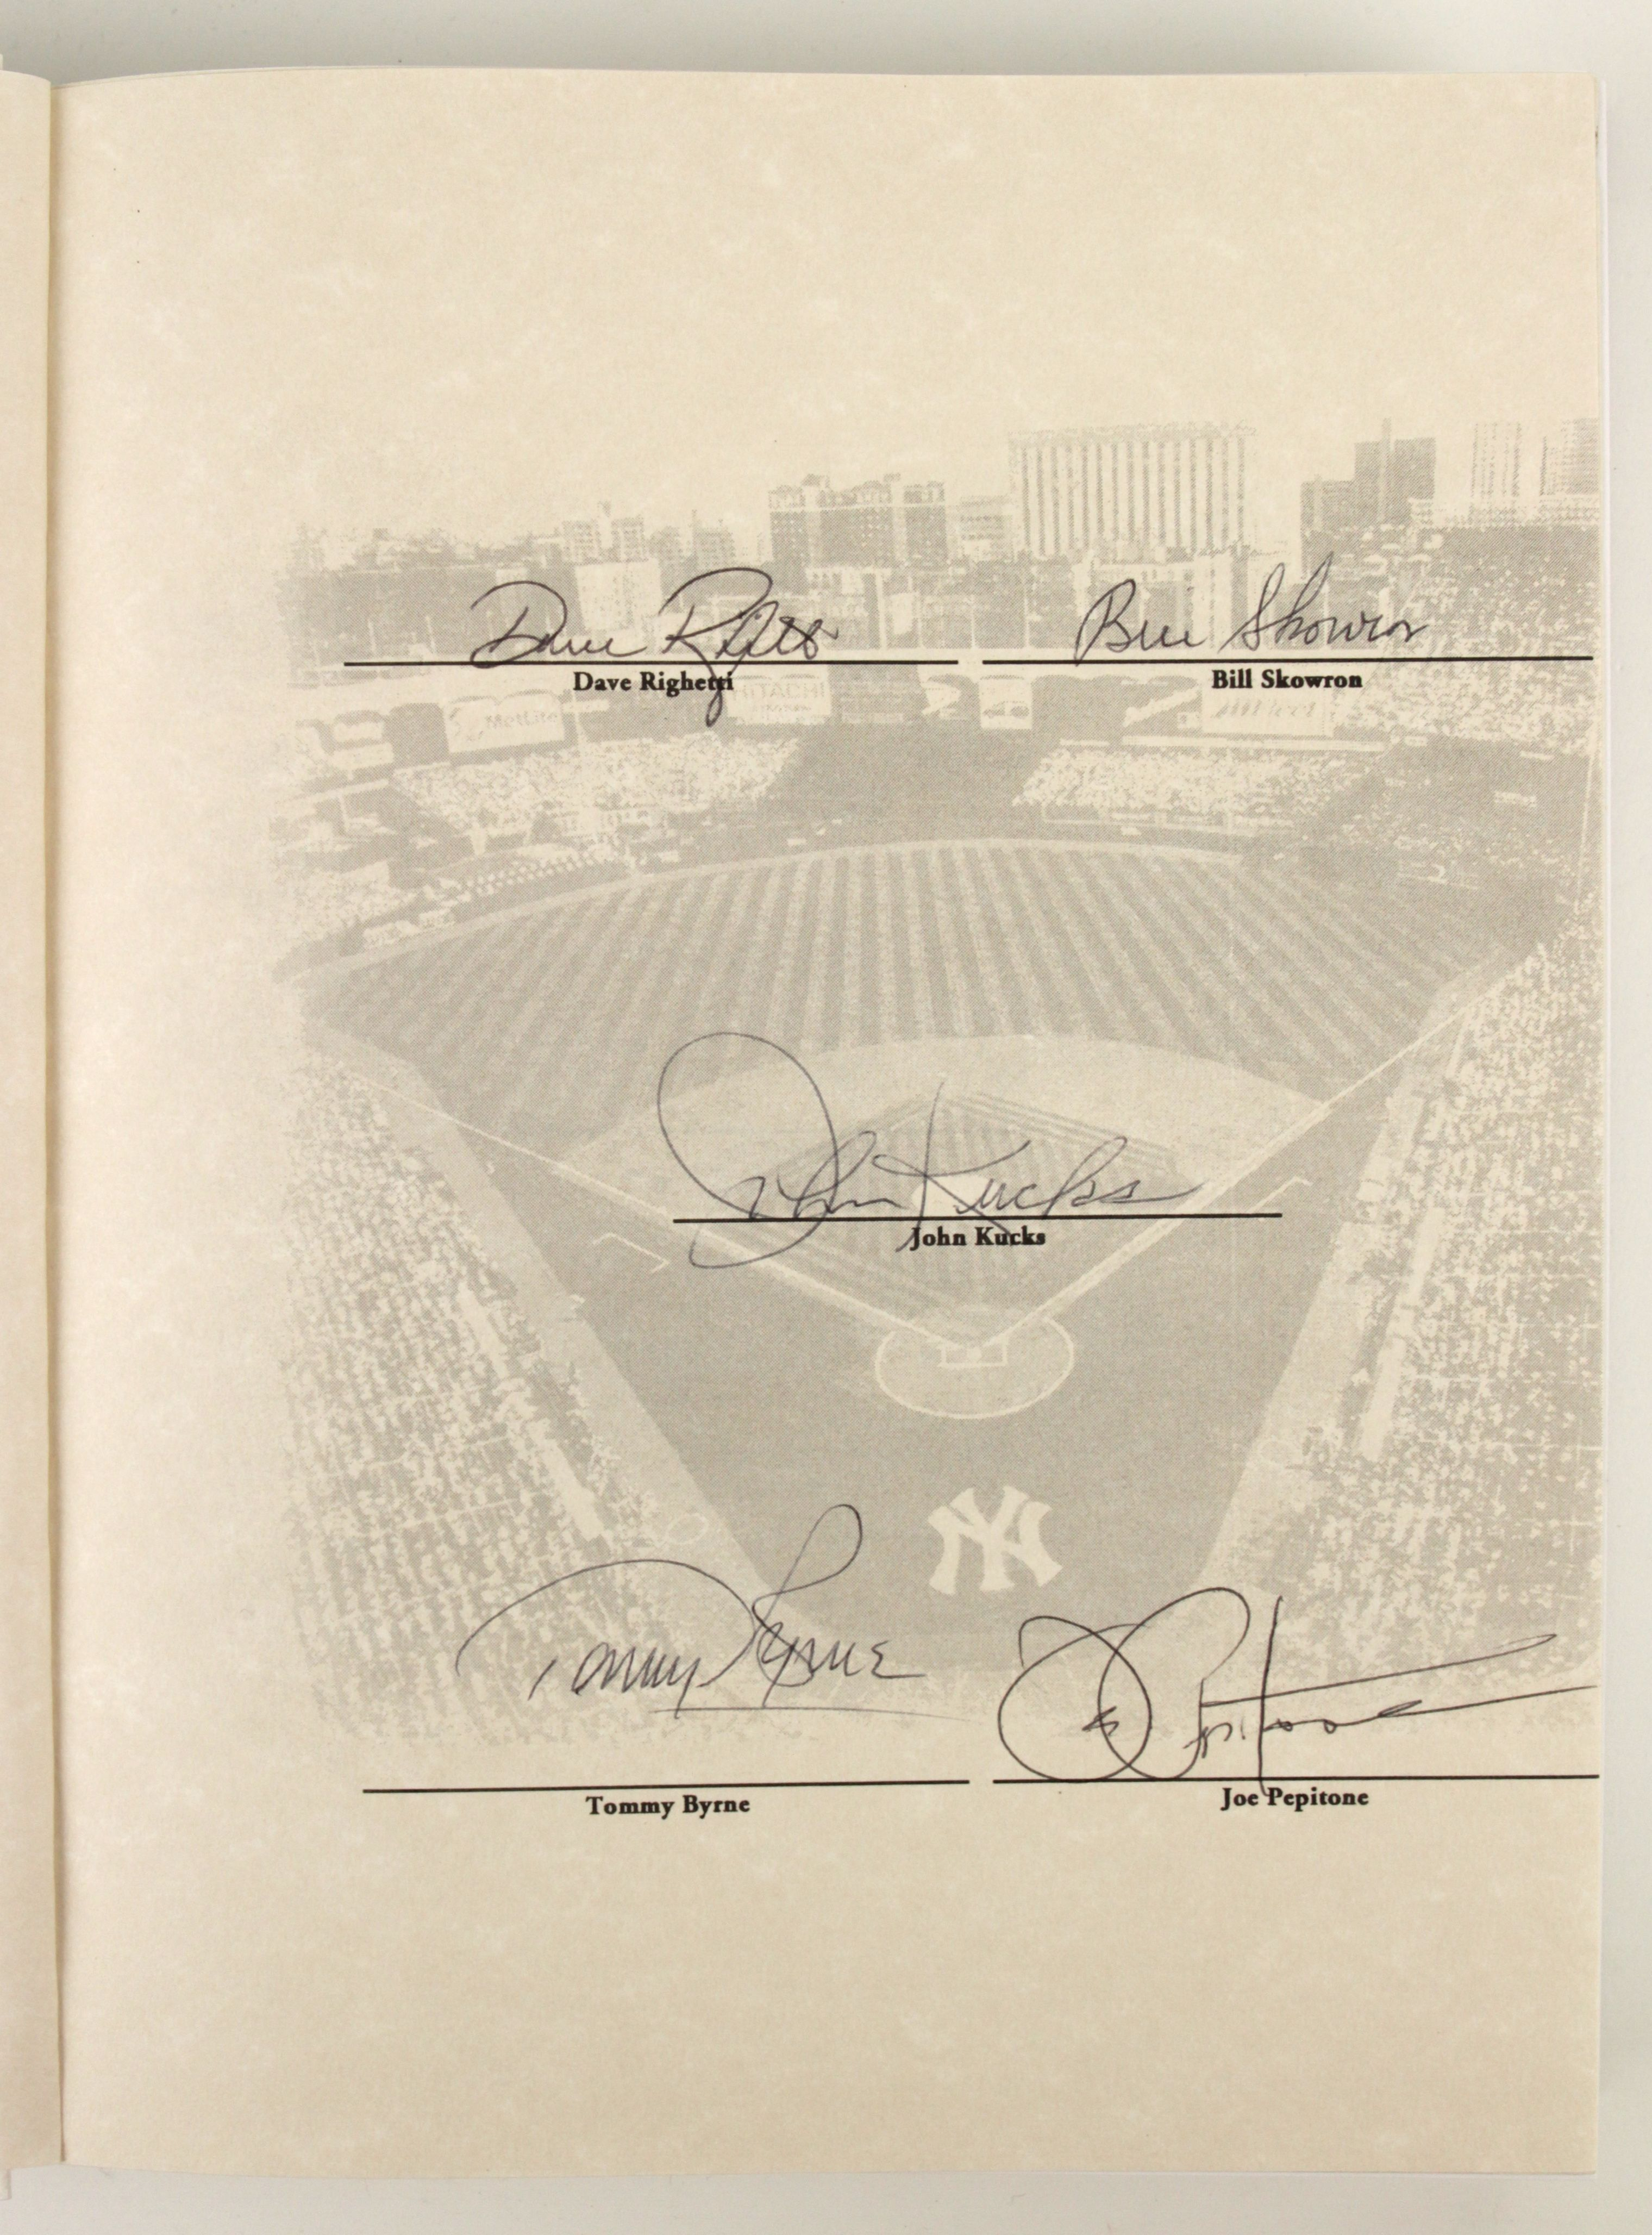 2003 BASEBALL BOOK SIGNED BY AUTHOR